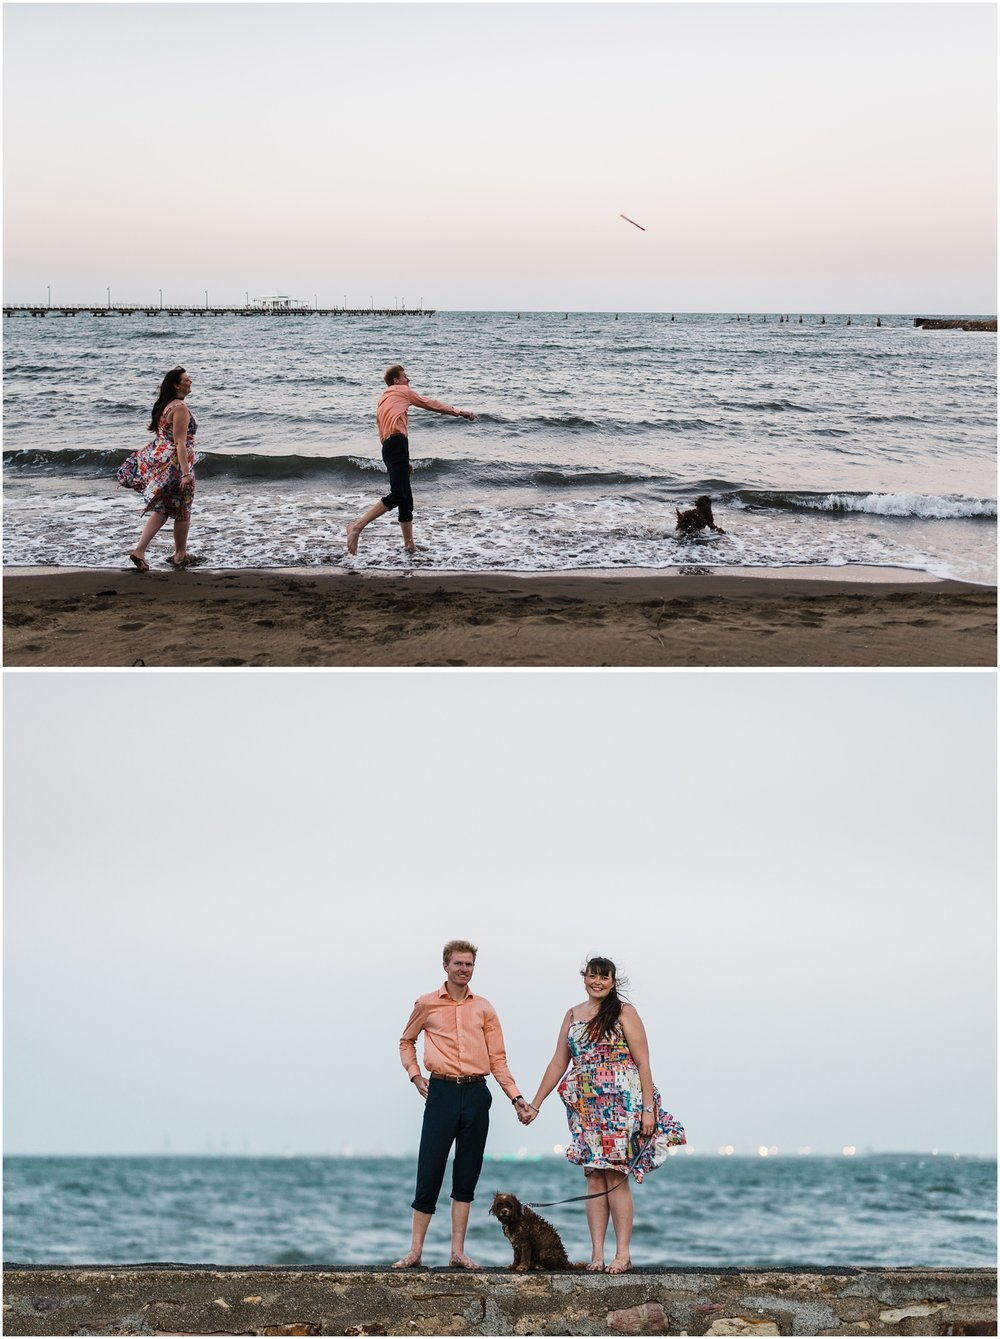 brisbane-brighton-sandgate-engagement-pet-photography-cute-doggo34.jpg